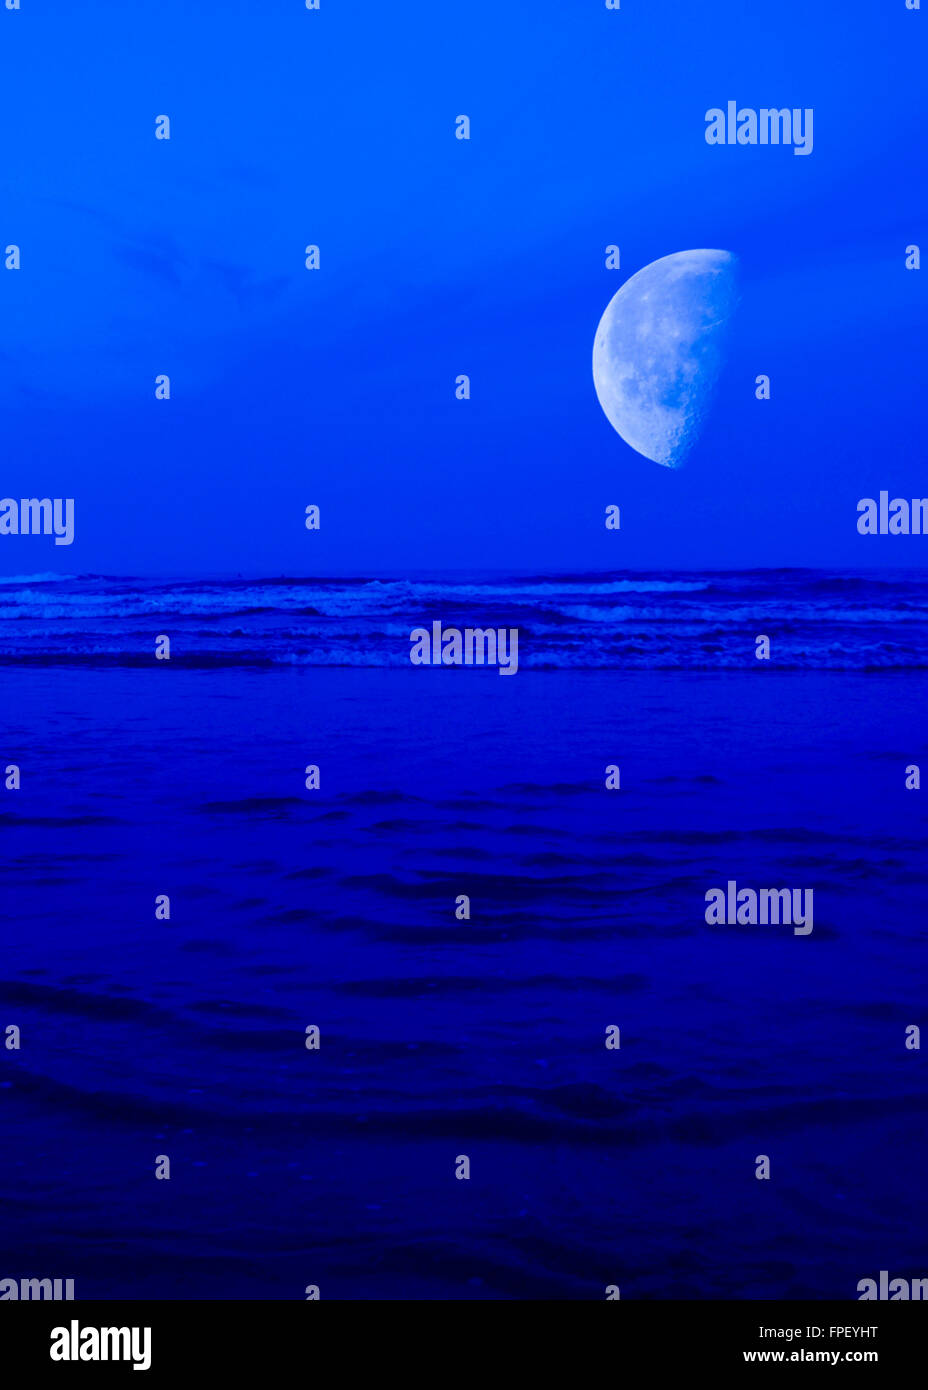 Moon over the blue ocean.The blue hour. - Stock Image